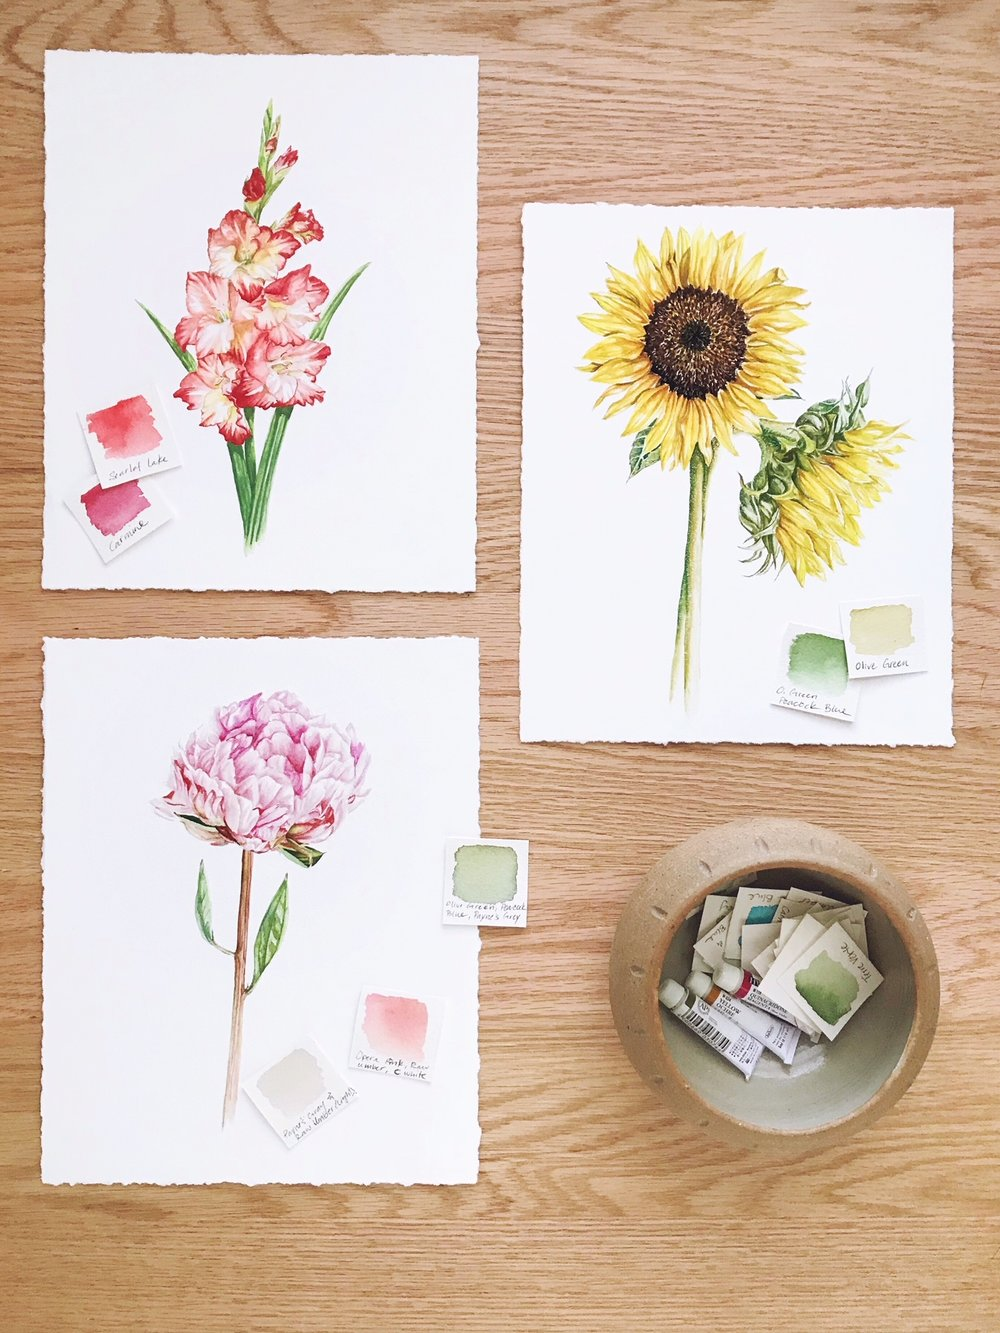 Gladiolus, Peony, & Sunflowers -   These are art prints that are available in my shop.